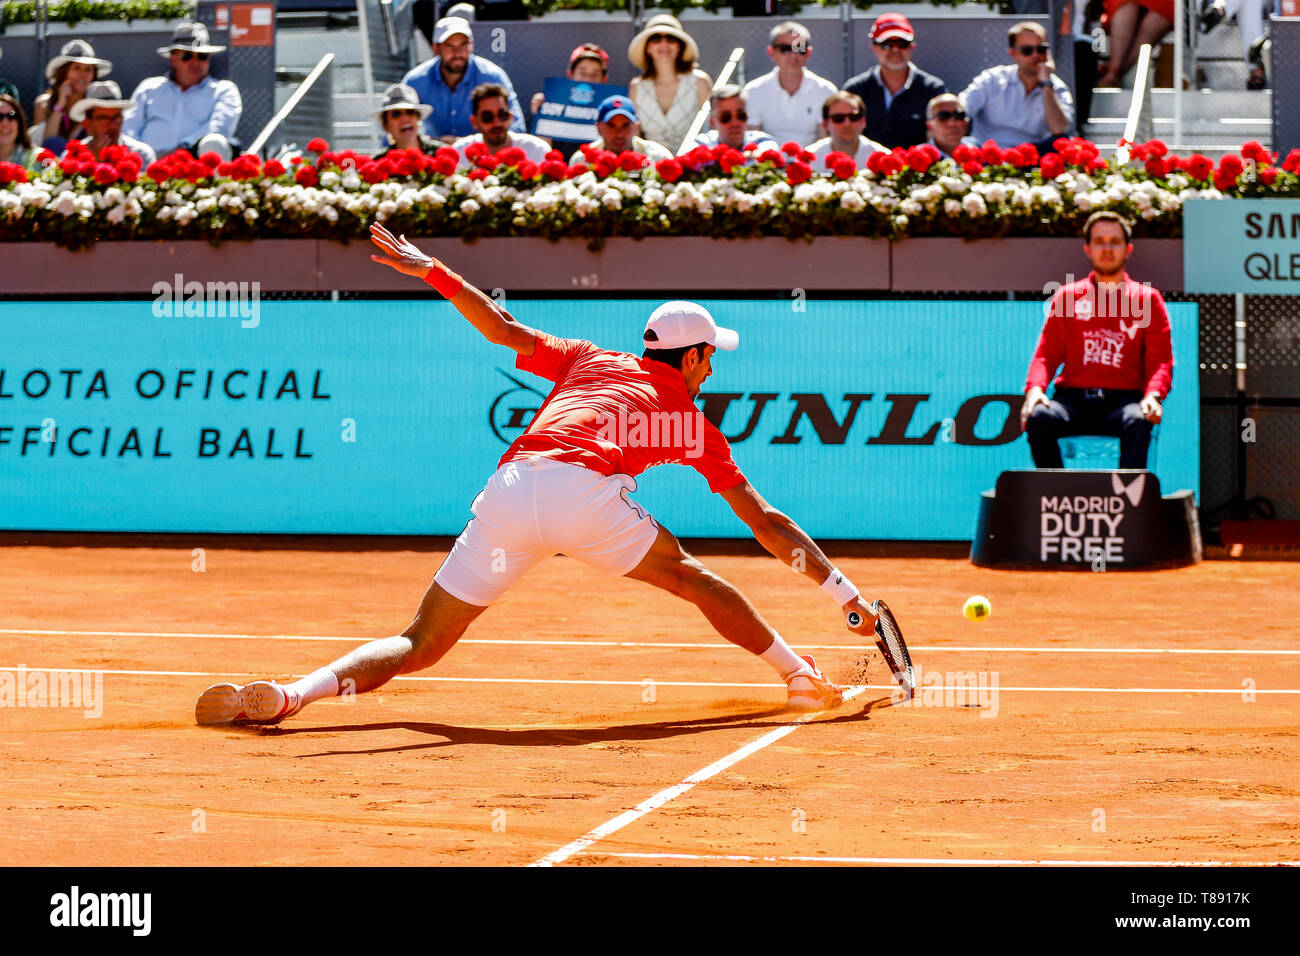 Caja Magica, Madrid, Spain. 11th May, 2019. Mutua Madrid Open, day 8; Novak Djokovic (SRB) at the net for a drop volley Credit: Action Plus Sports/Alamy Live News - Stock Image